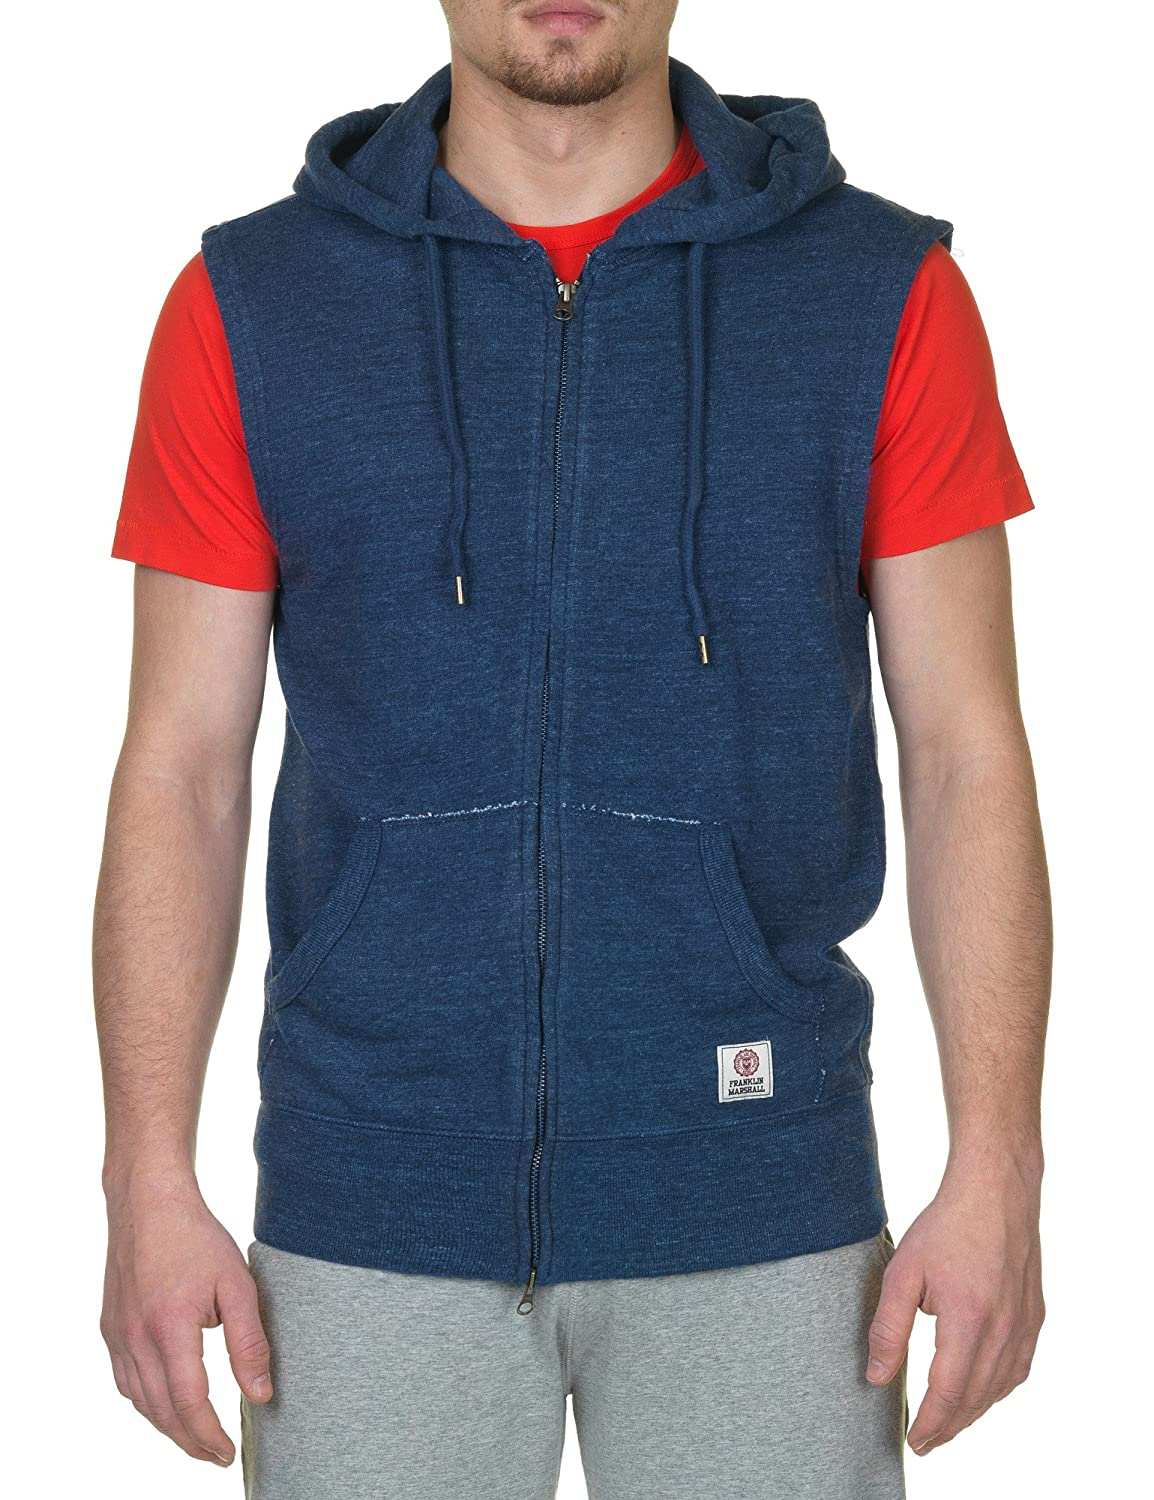 Franklin & Marshall Men's Blue Vest With Hood 100% Cotton